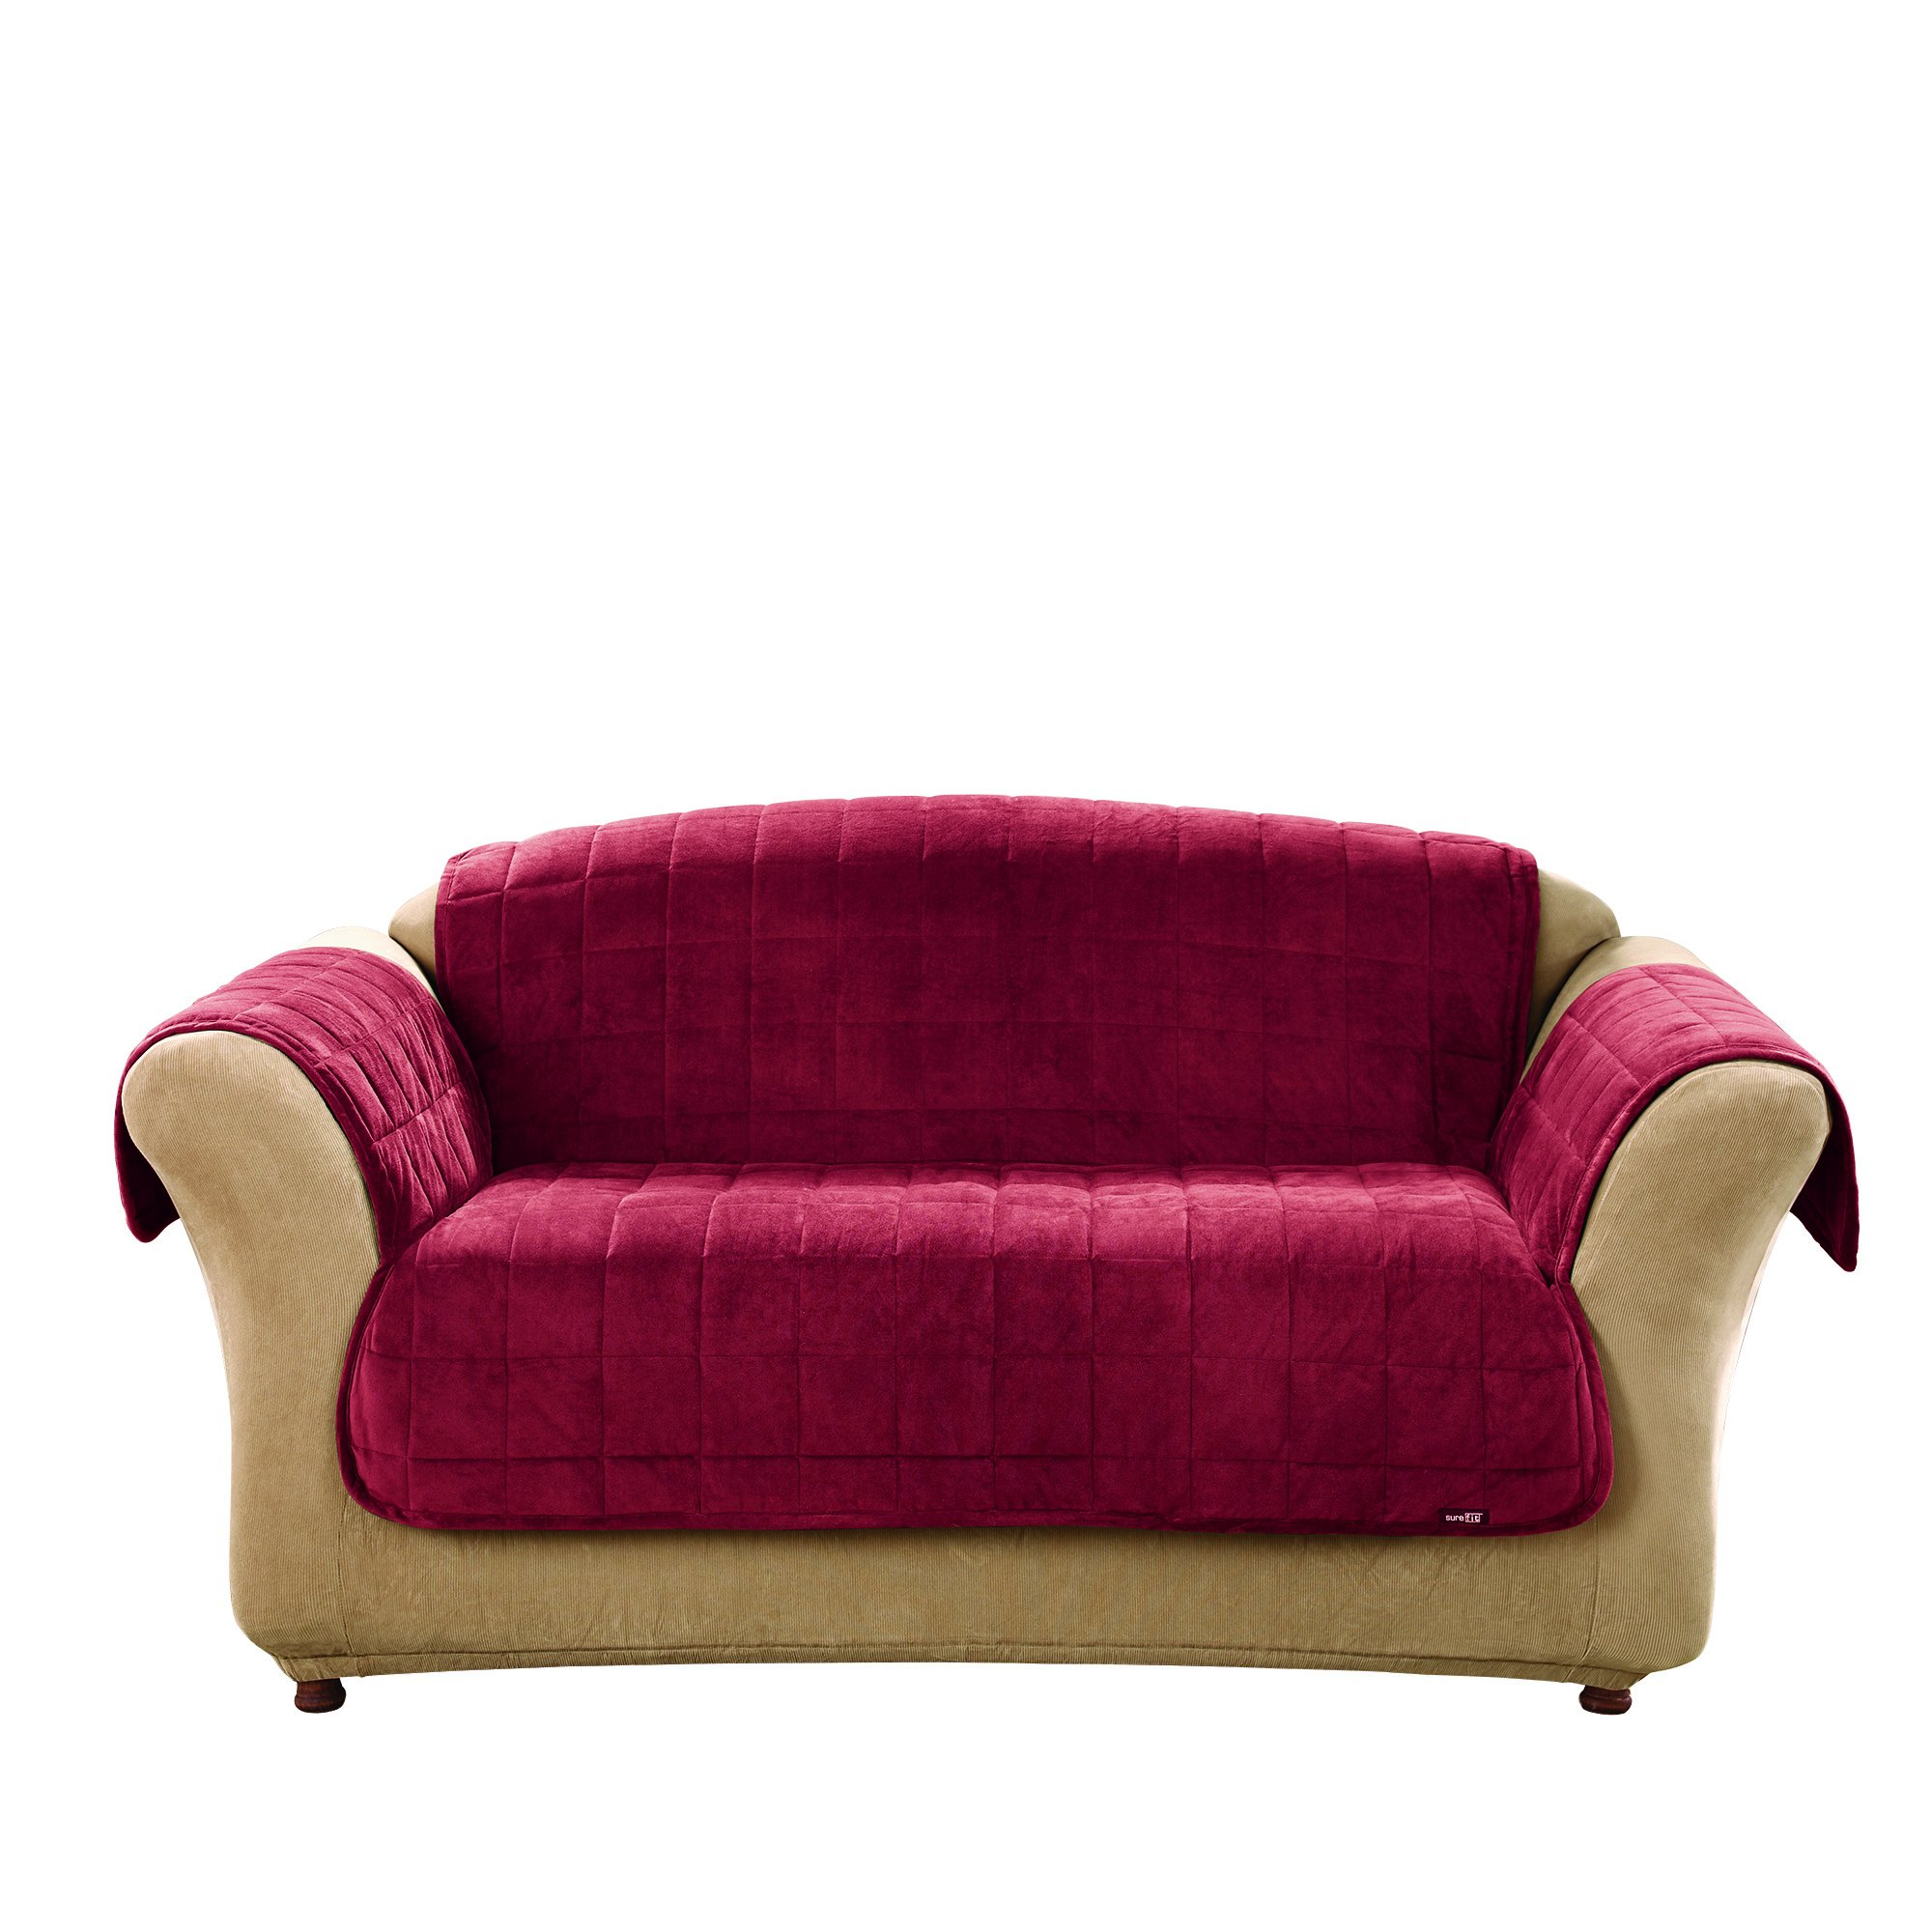 Sure Fit Deluxe Pet Cover  - Loveseat Slipcover  - Burgundy (SF39457)